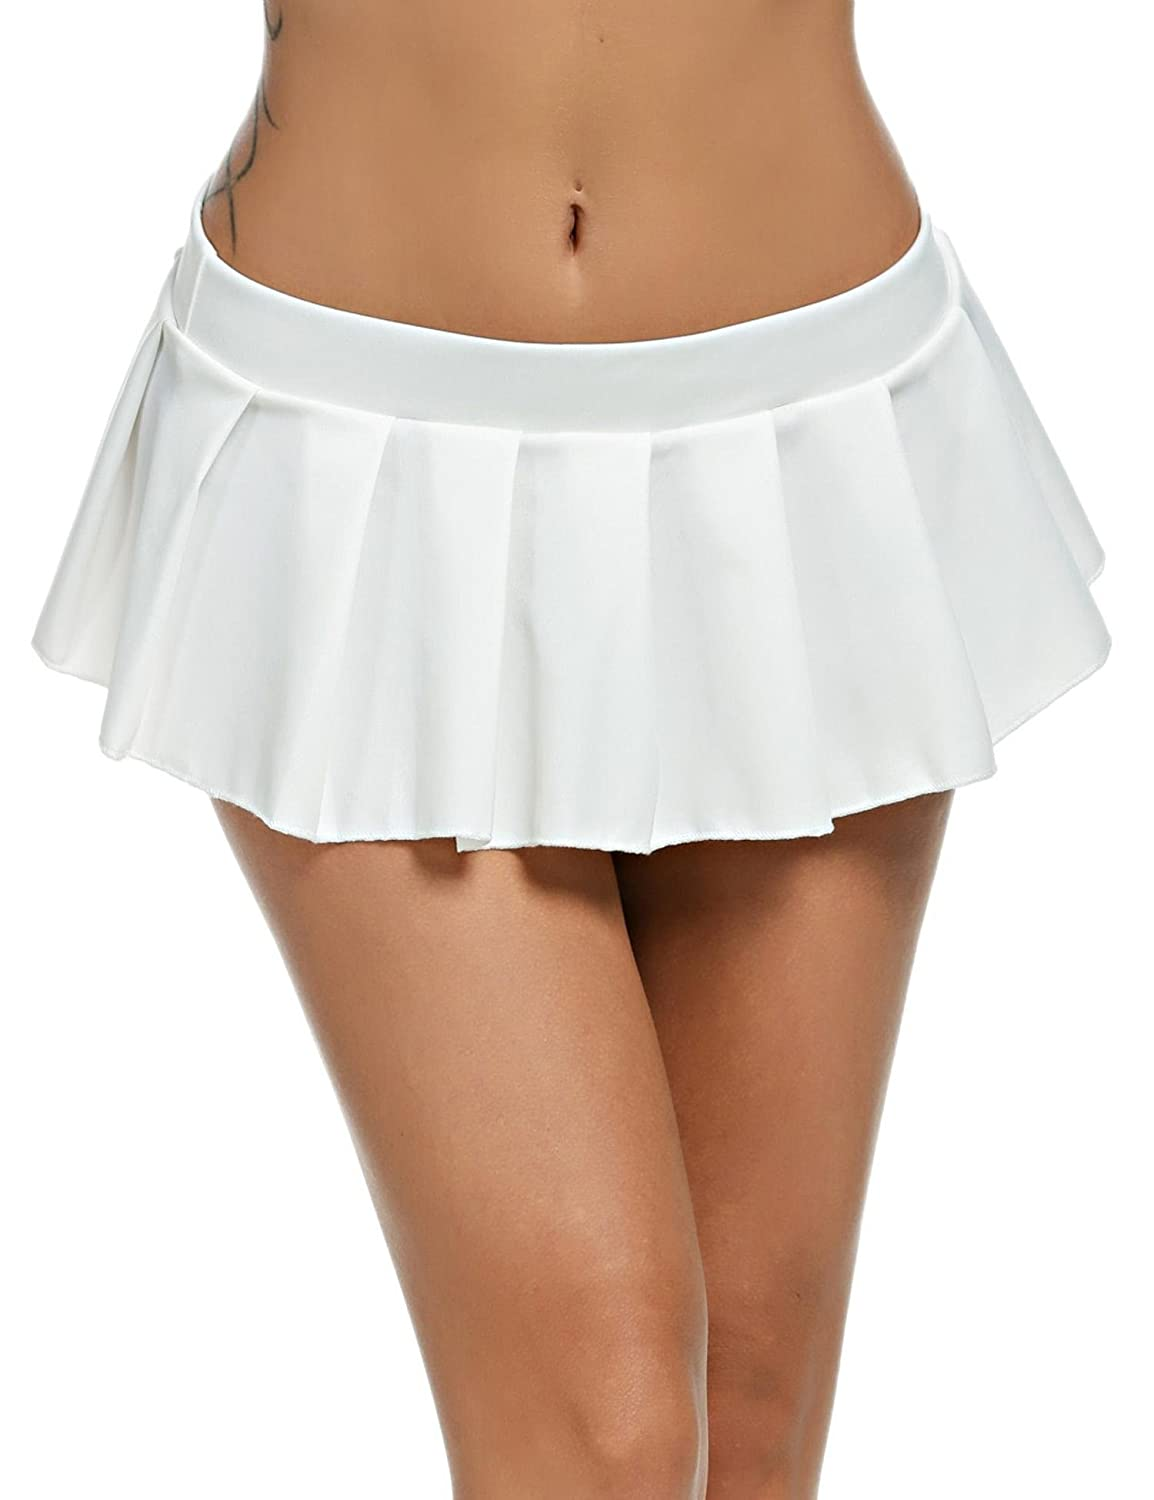 e1413100c 100% Brand New Material: 95% Nylon, 5% Spandex 6 Colors available: White,  Black, Red Waist: Low Waist Skirt Length: Micro Mini Skirt Type: Pleated  Pattern: ...